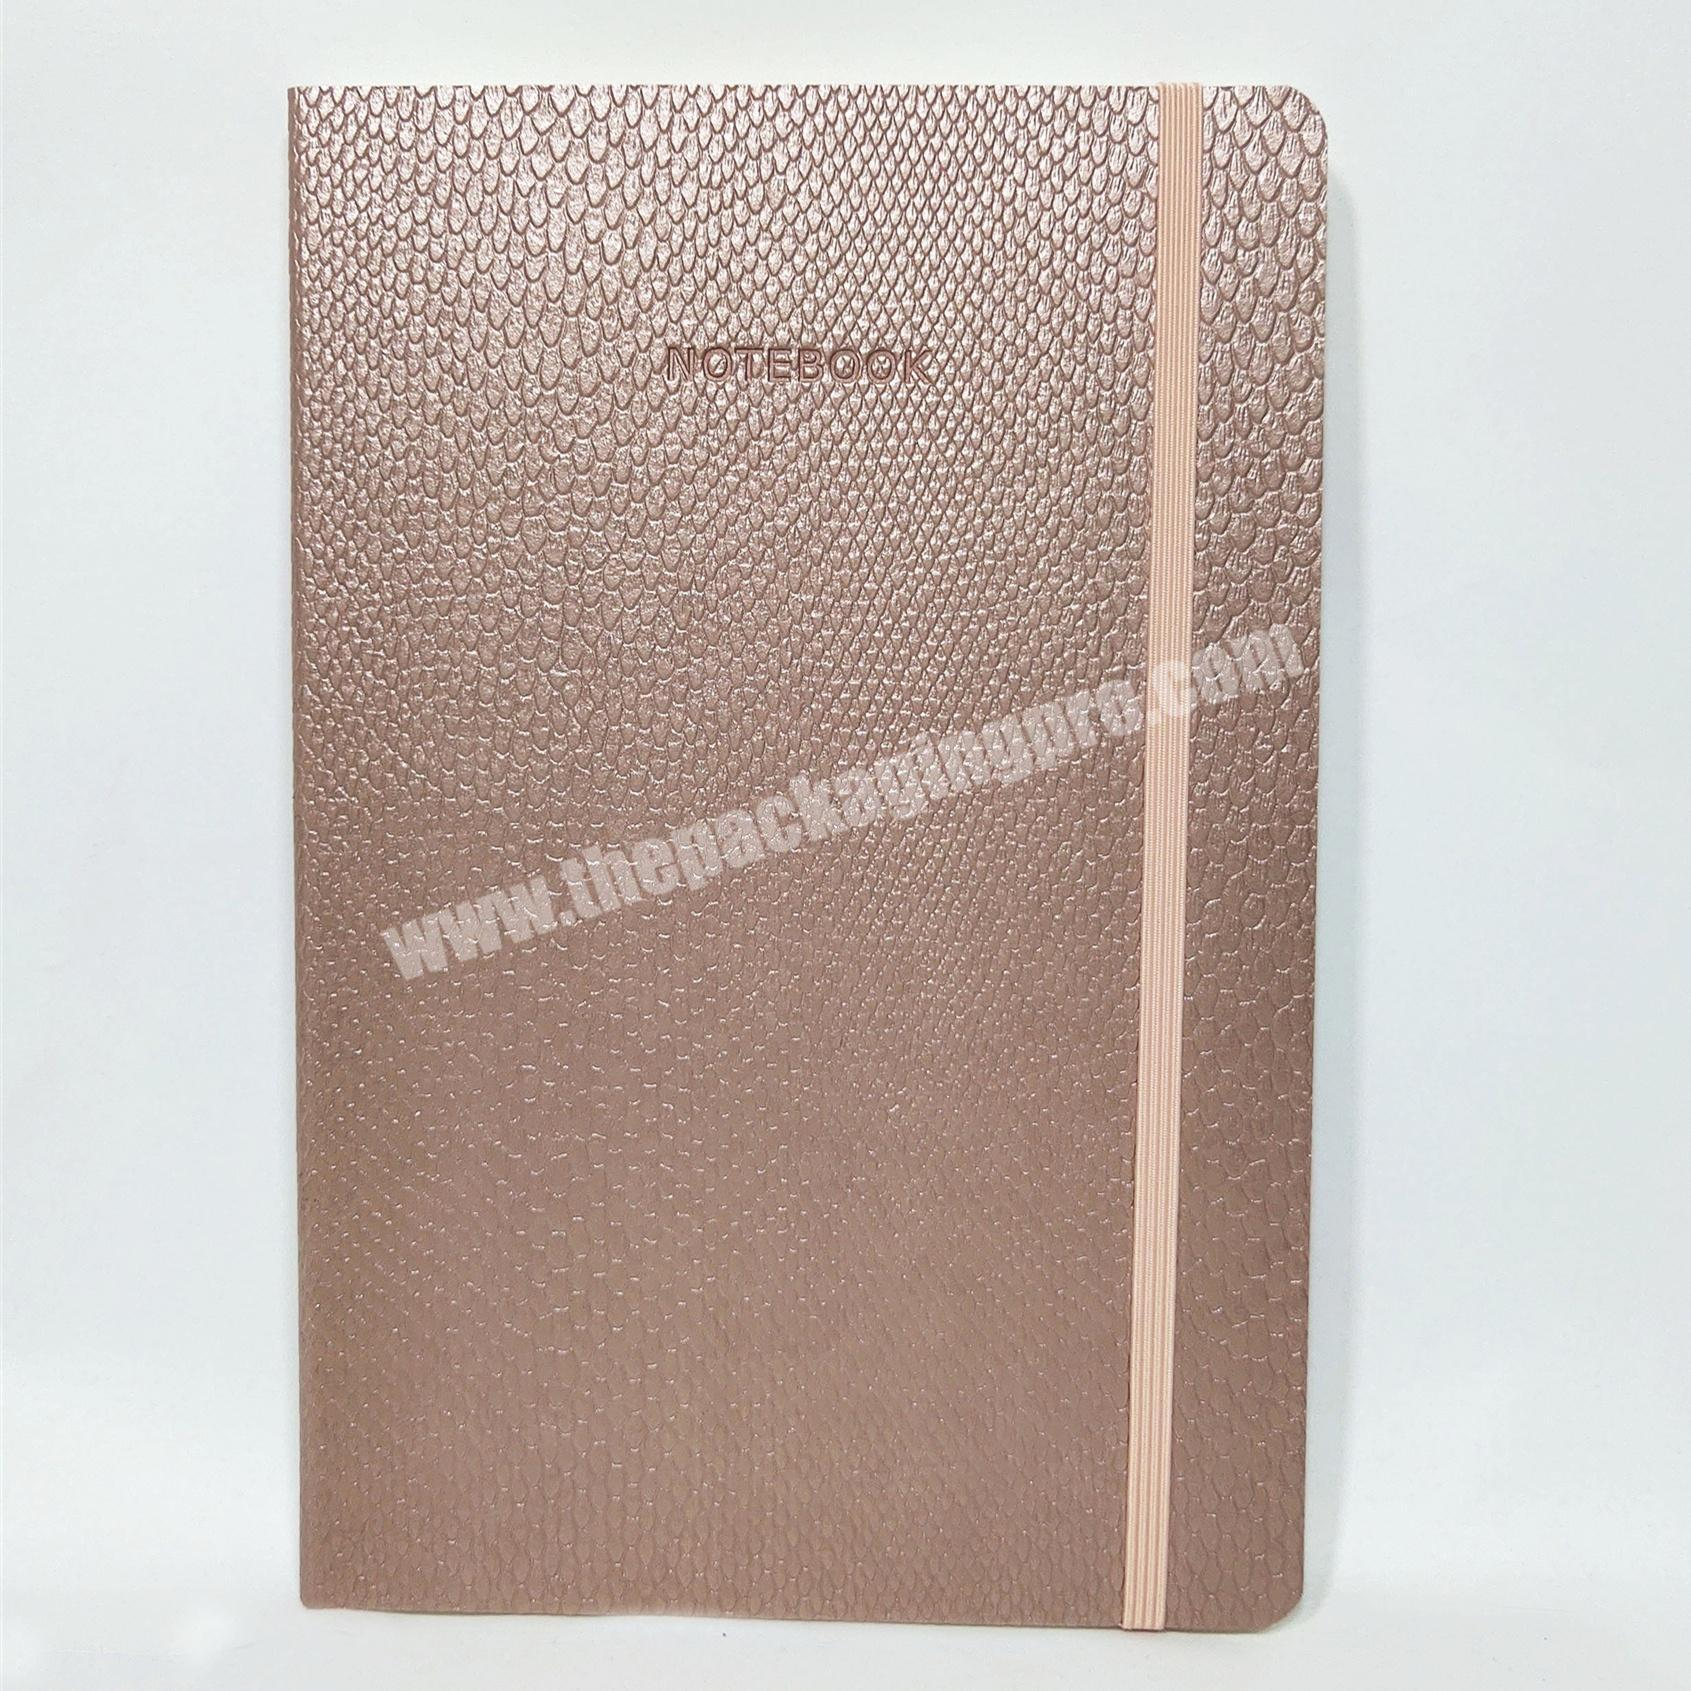 Best selling exquisite notebook office school supplier journal a5 size diary